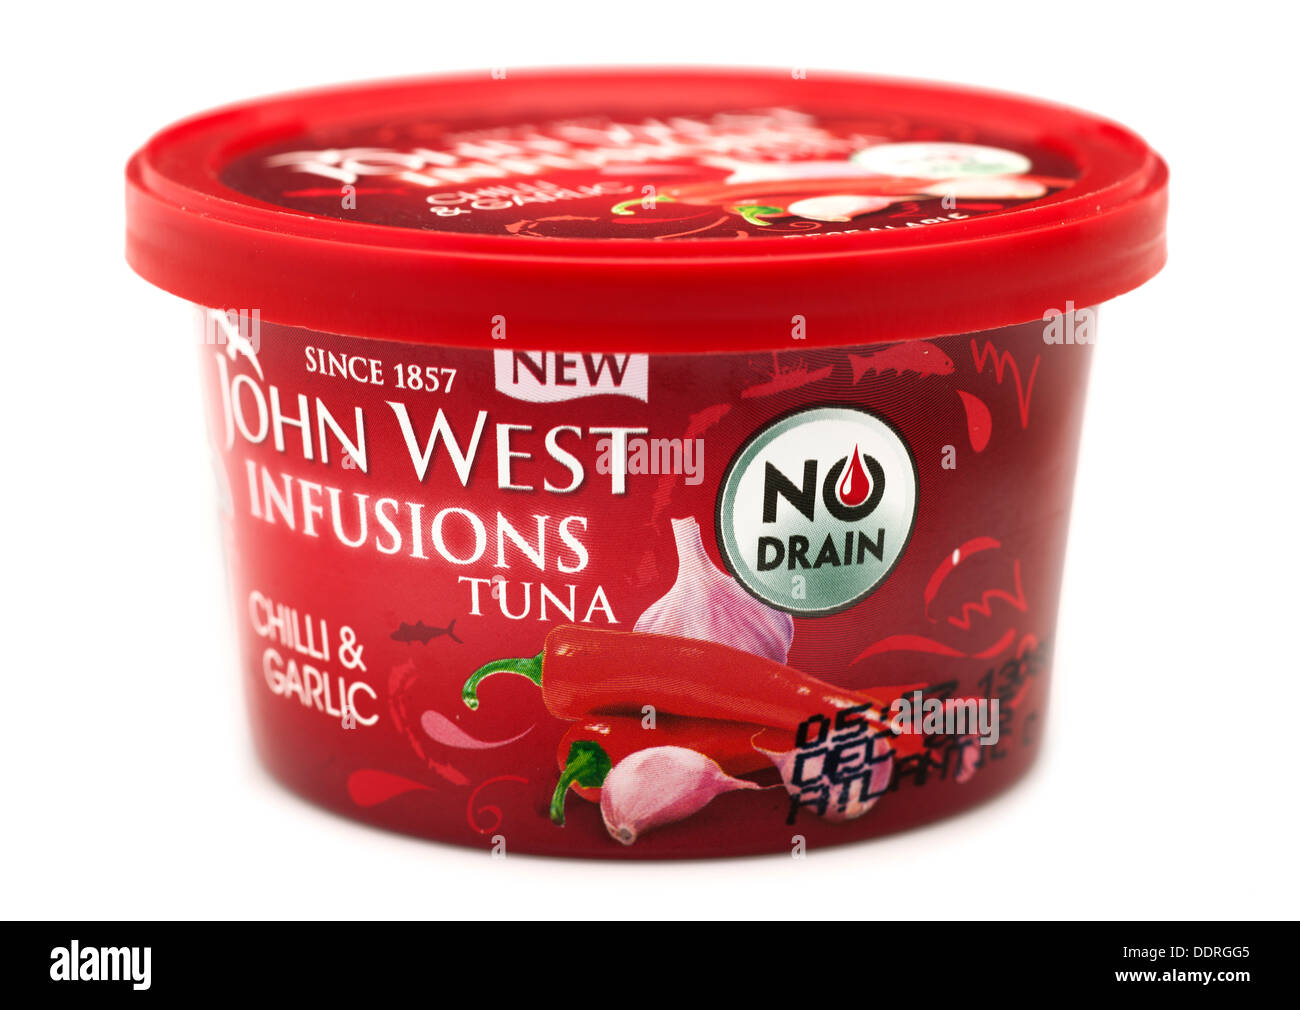 Can of John West chilli and garlic no drain tuna with resealable plastic lid - Stock Image